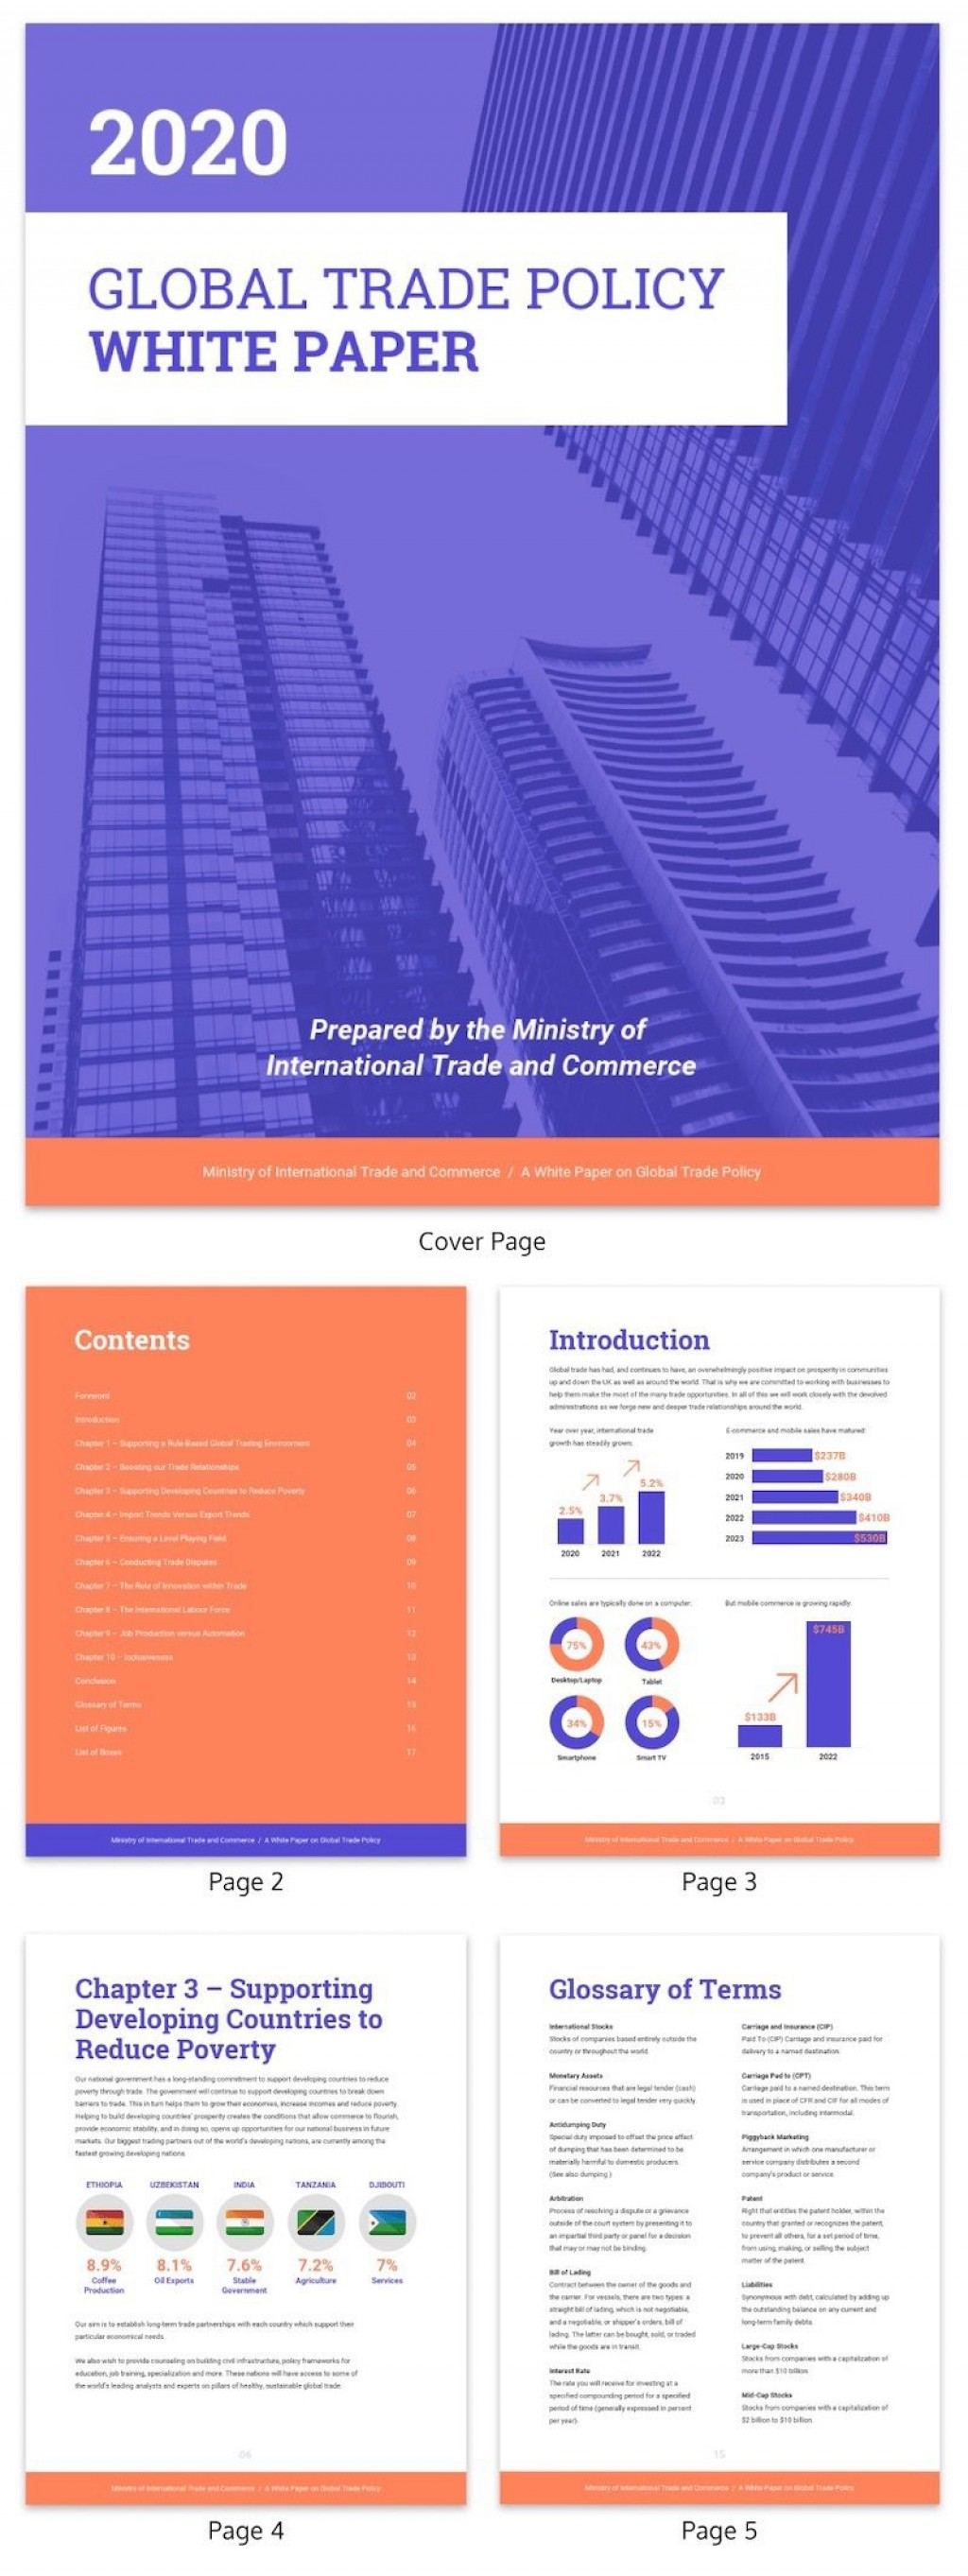 005 Unusual Technical White Paper Template Sample  Word Doc Free Download 2013Large